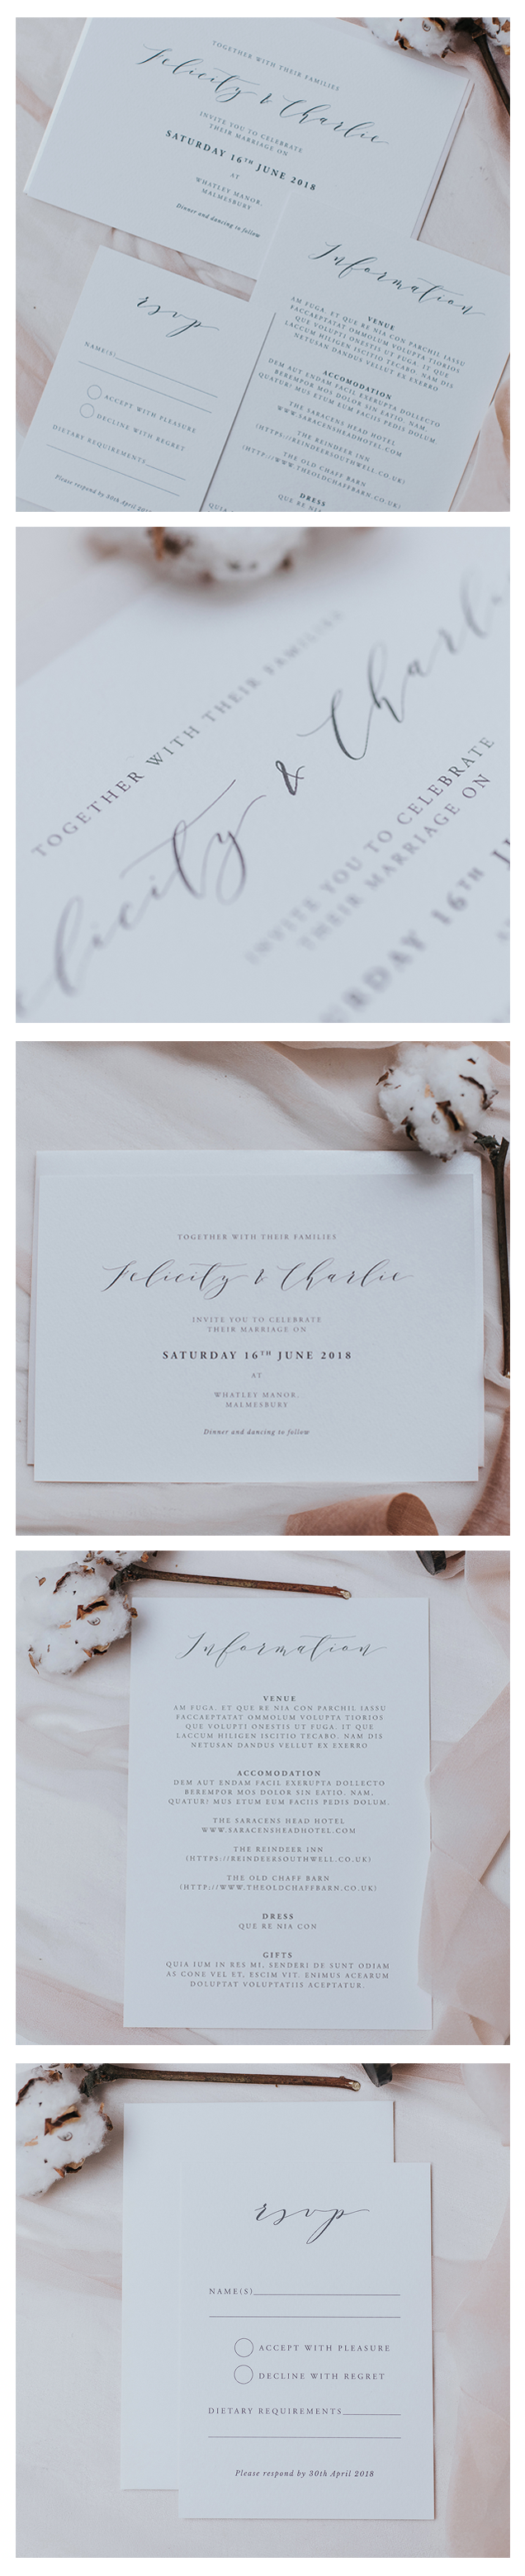 Felicity-Tile-Invite.png